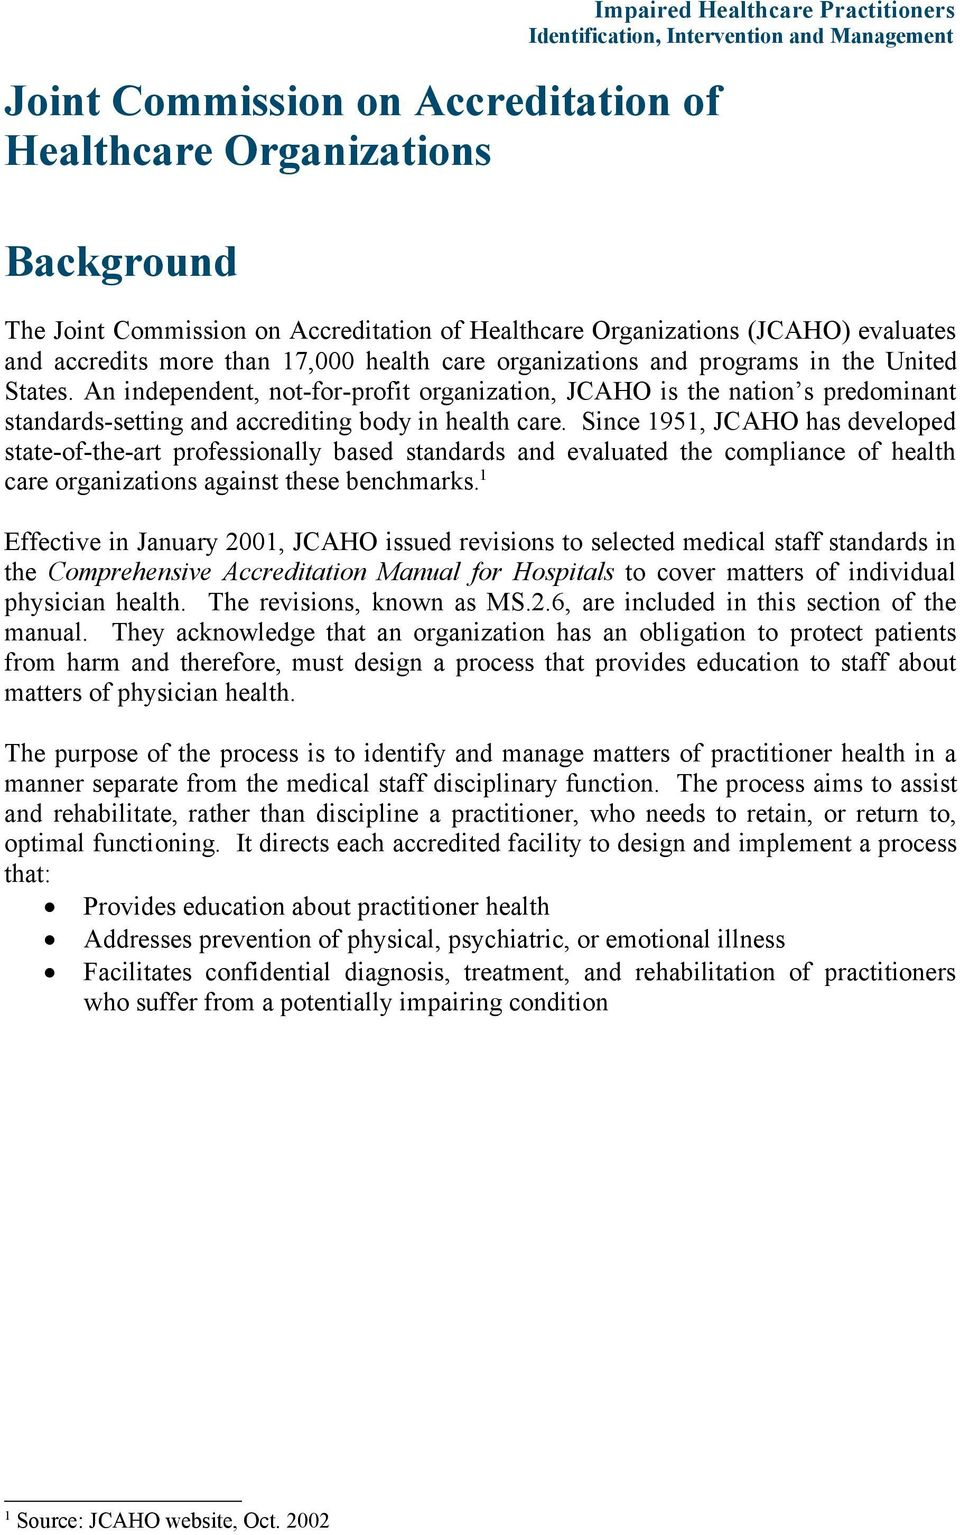 An independent, not-for-profit organization, JCAHO is the nation s predominant standards-setting and accrediting body in health care.